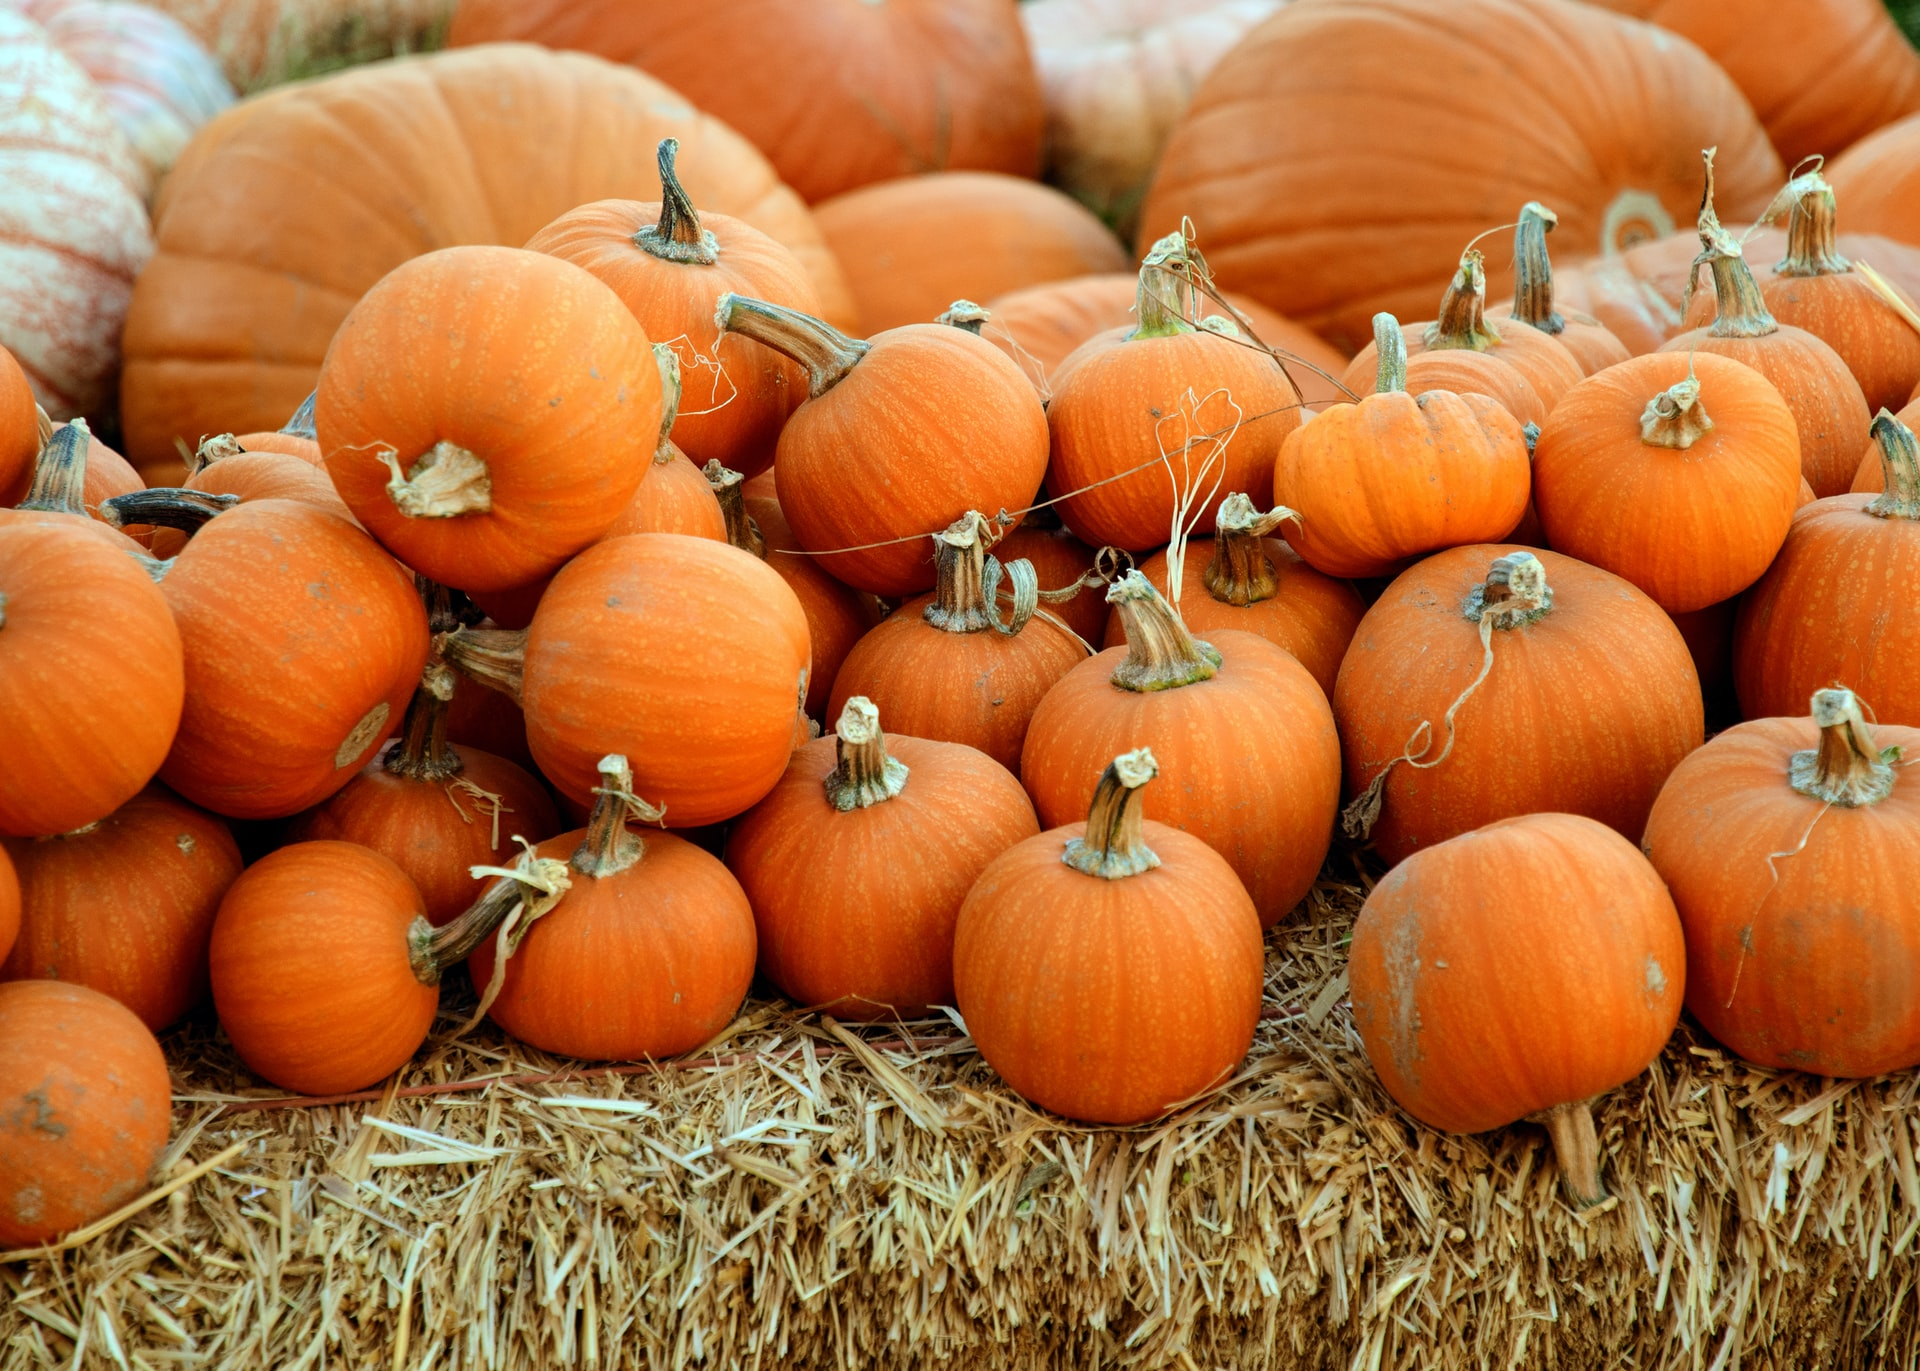 thumbnail image for blog The Best Ways to Decorate a Pumpkin, No Carving Knife Necessary